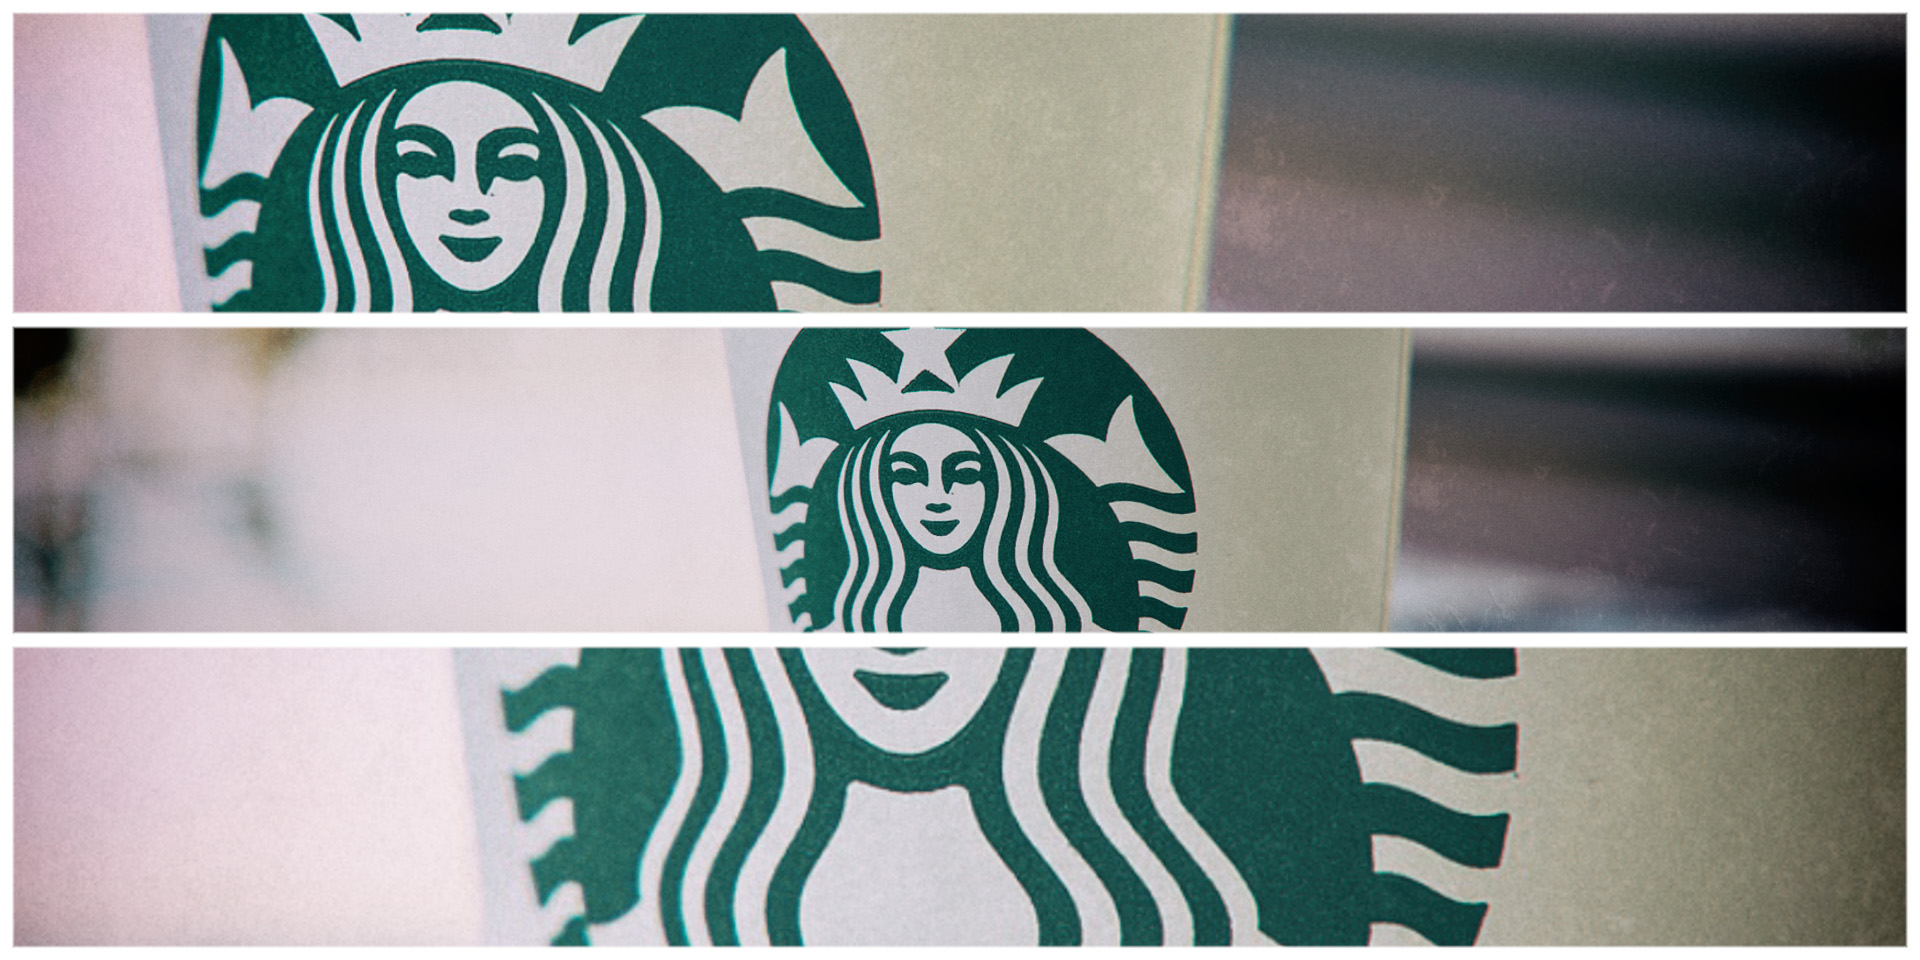 BUSINESS MAVERICK INTERVIEW: Taste Holdings CEO lays out leaner, meaner Starbucks expansion